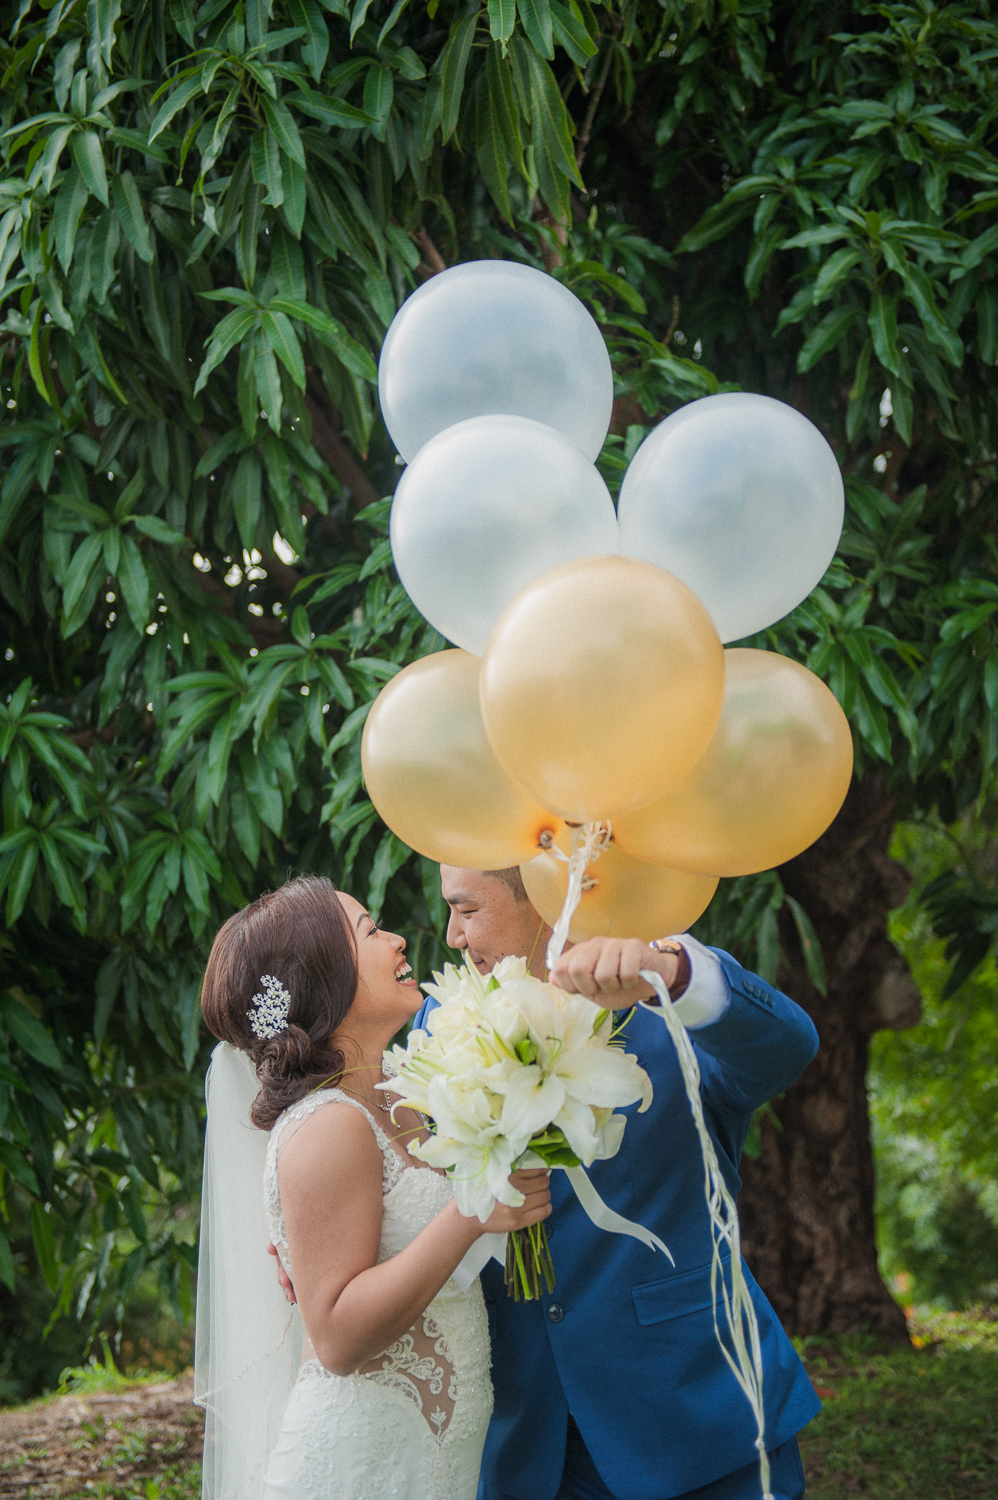 Wedding couple with gold and white balloons